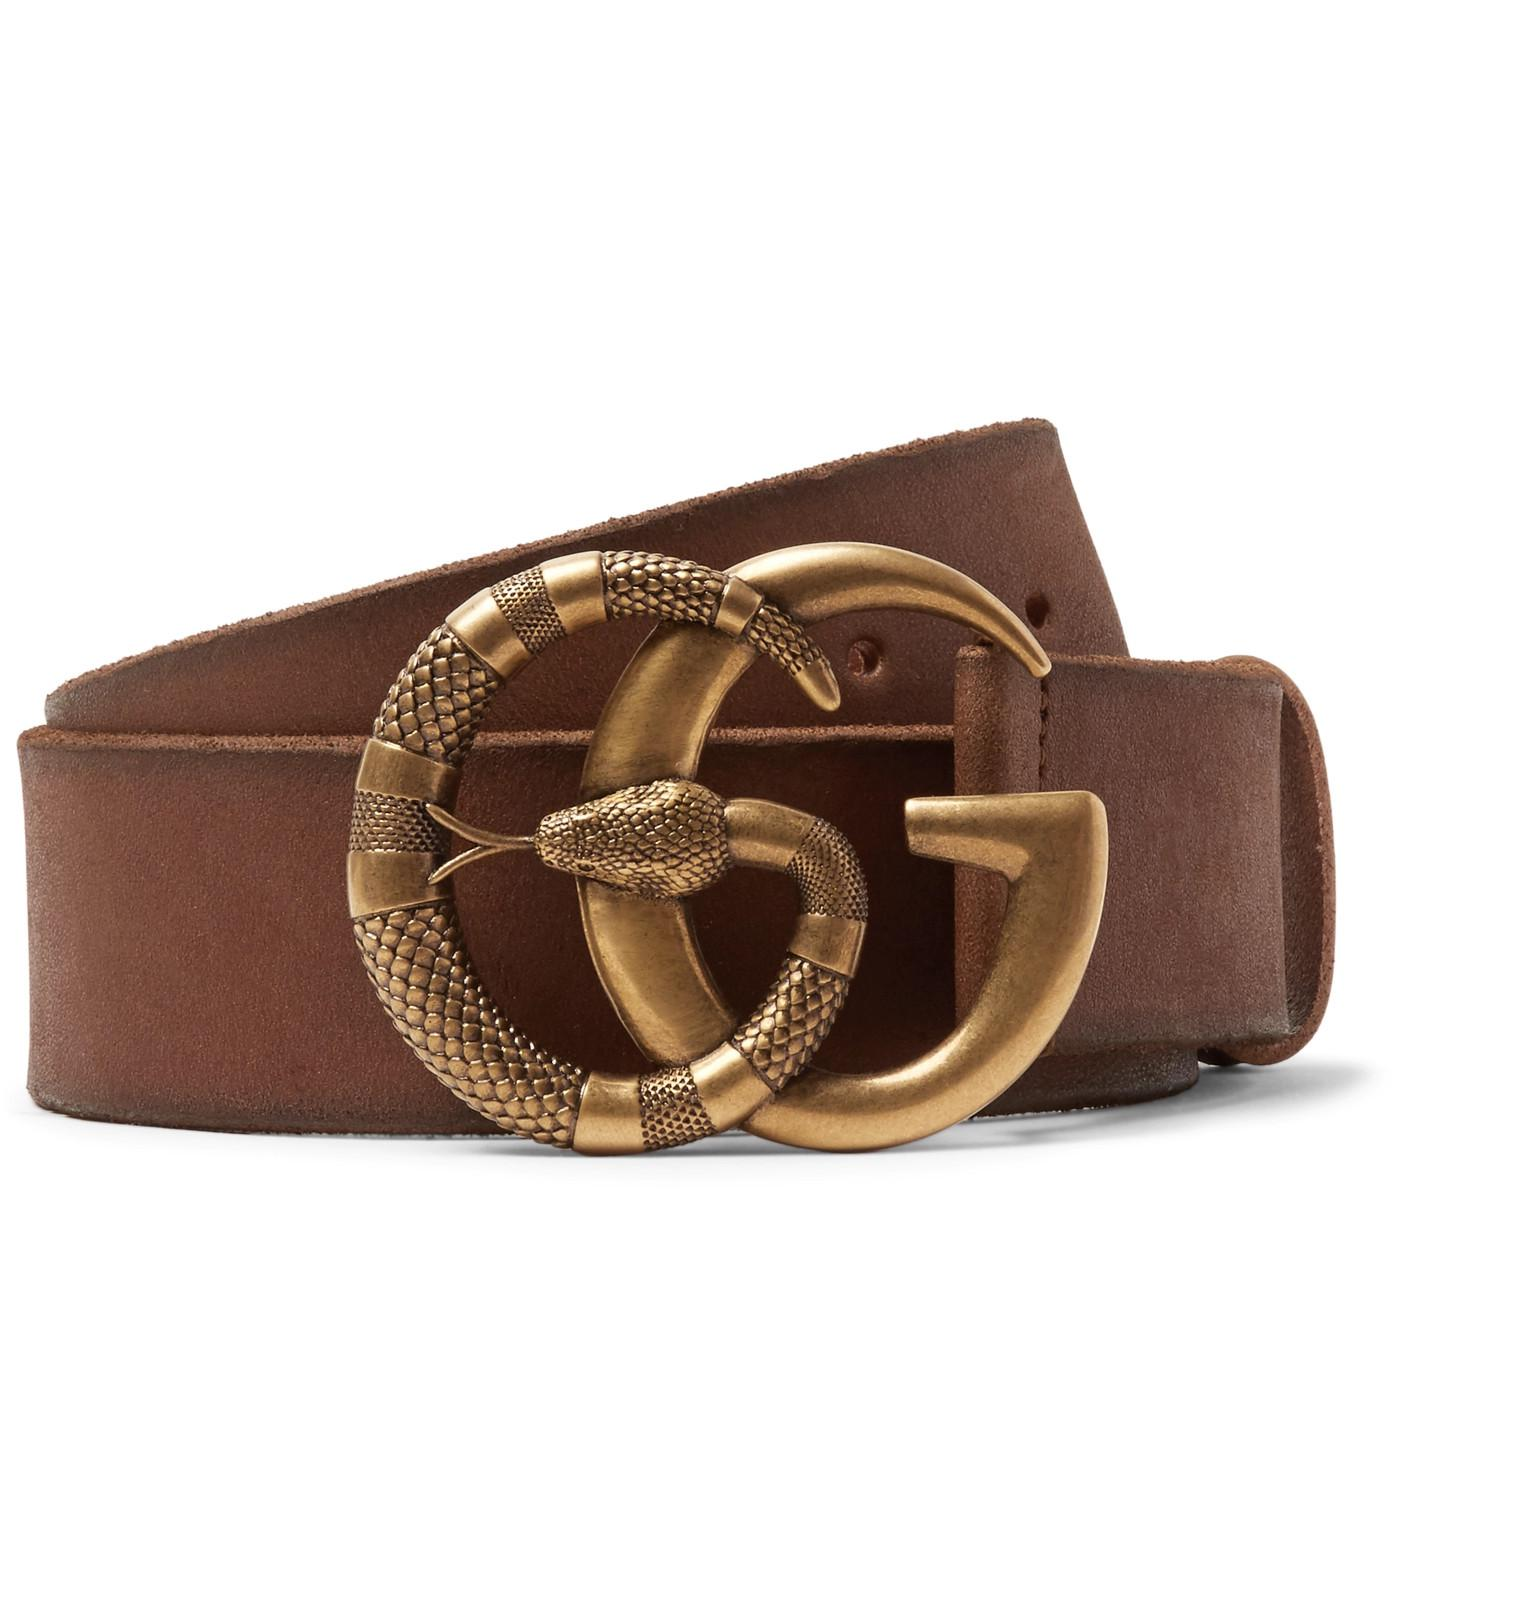 7e9dd7ad300 Gucci 4cm Tan Burnished-leather Belt in Brown for Men - Lyst